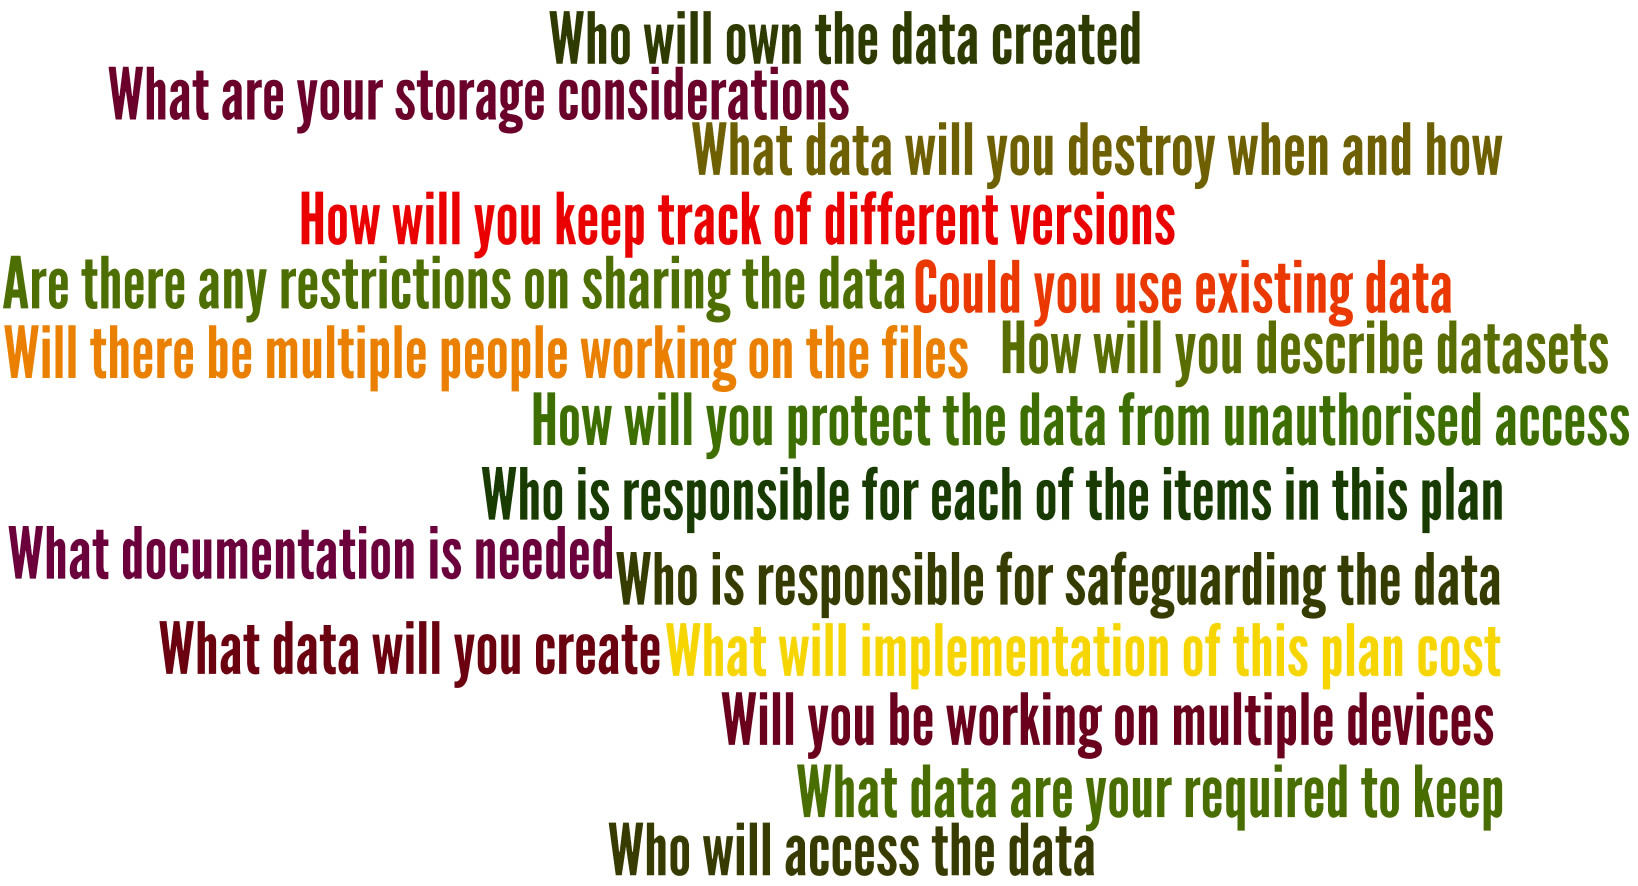 Questions to consider when creating a data plan